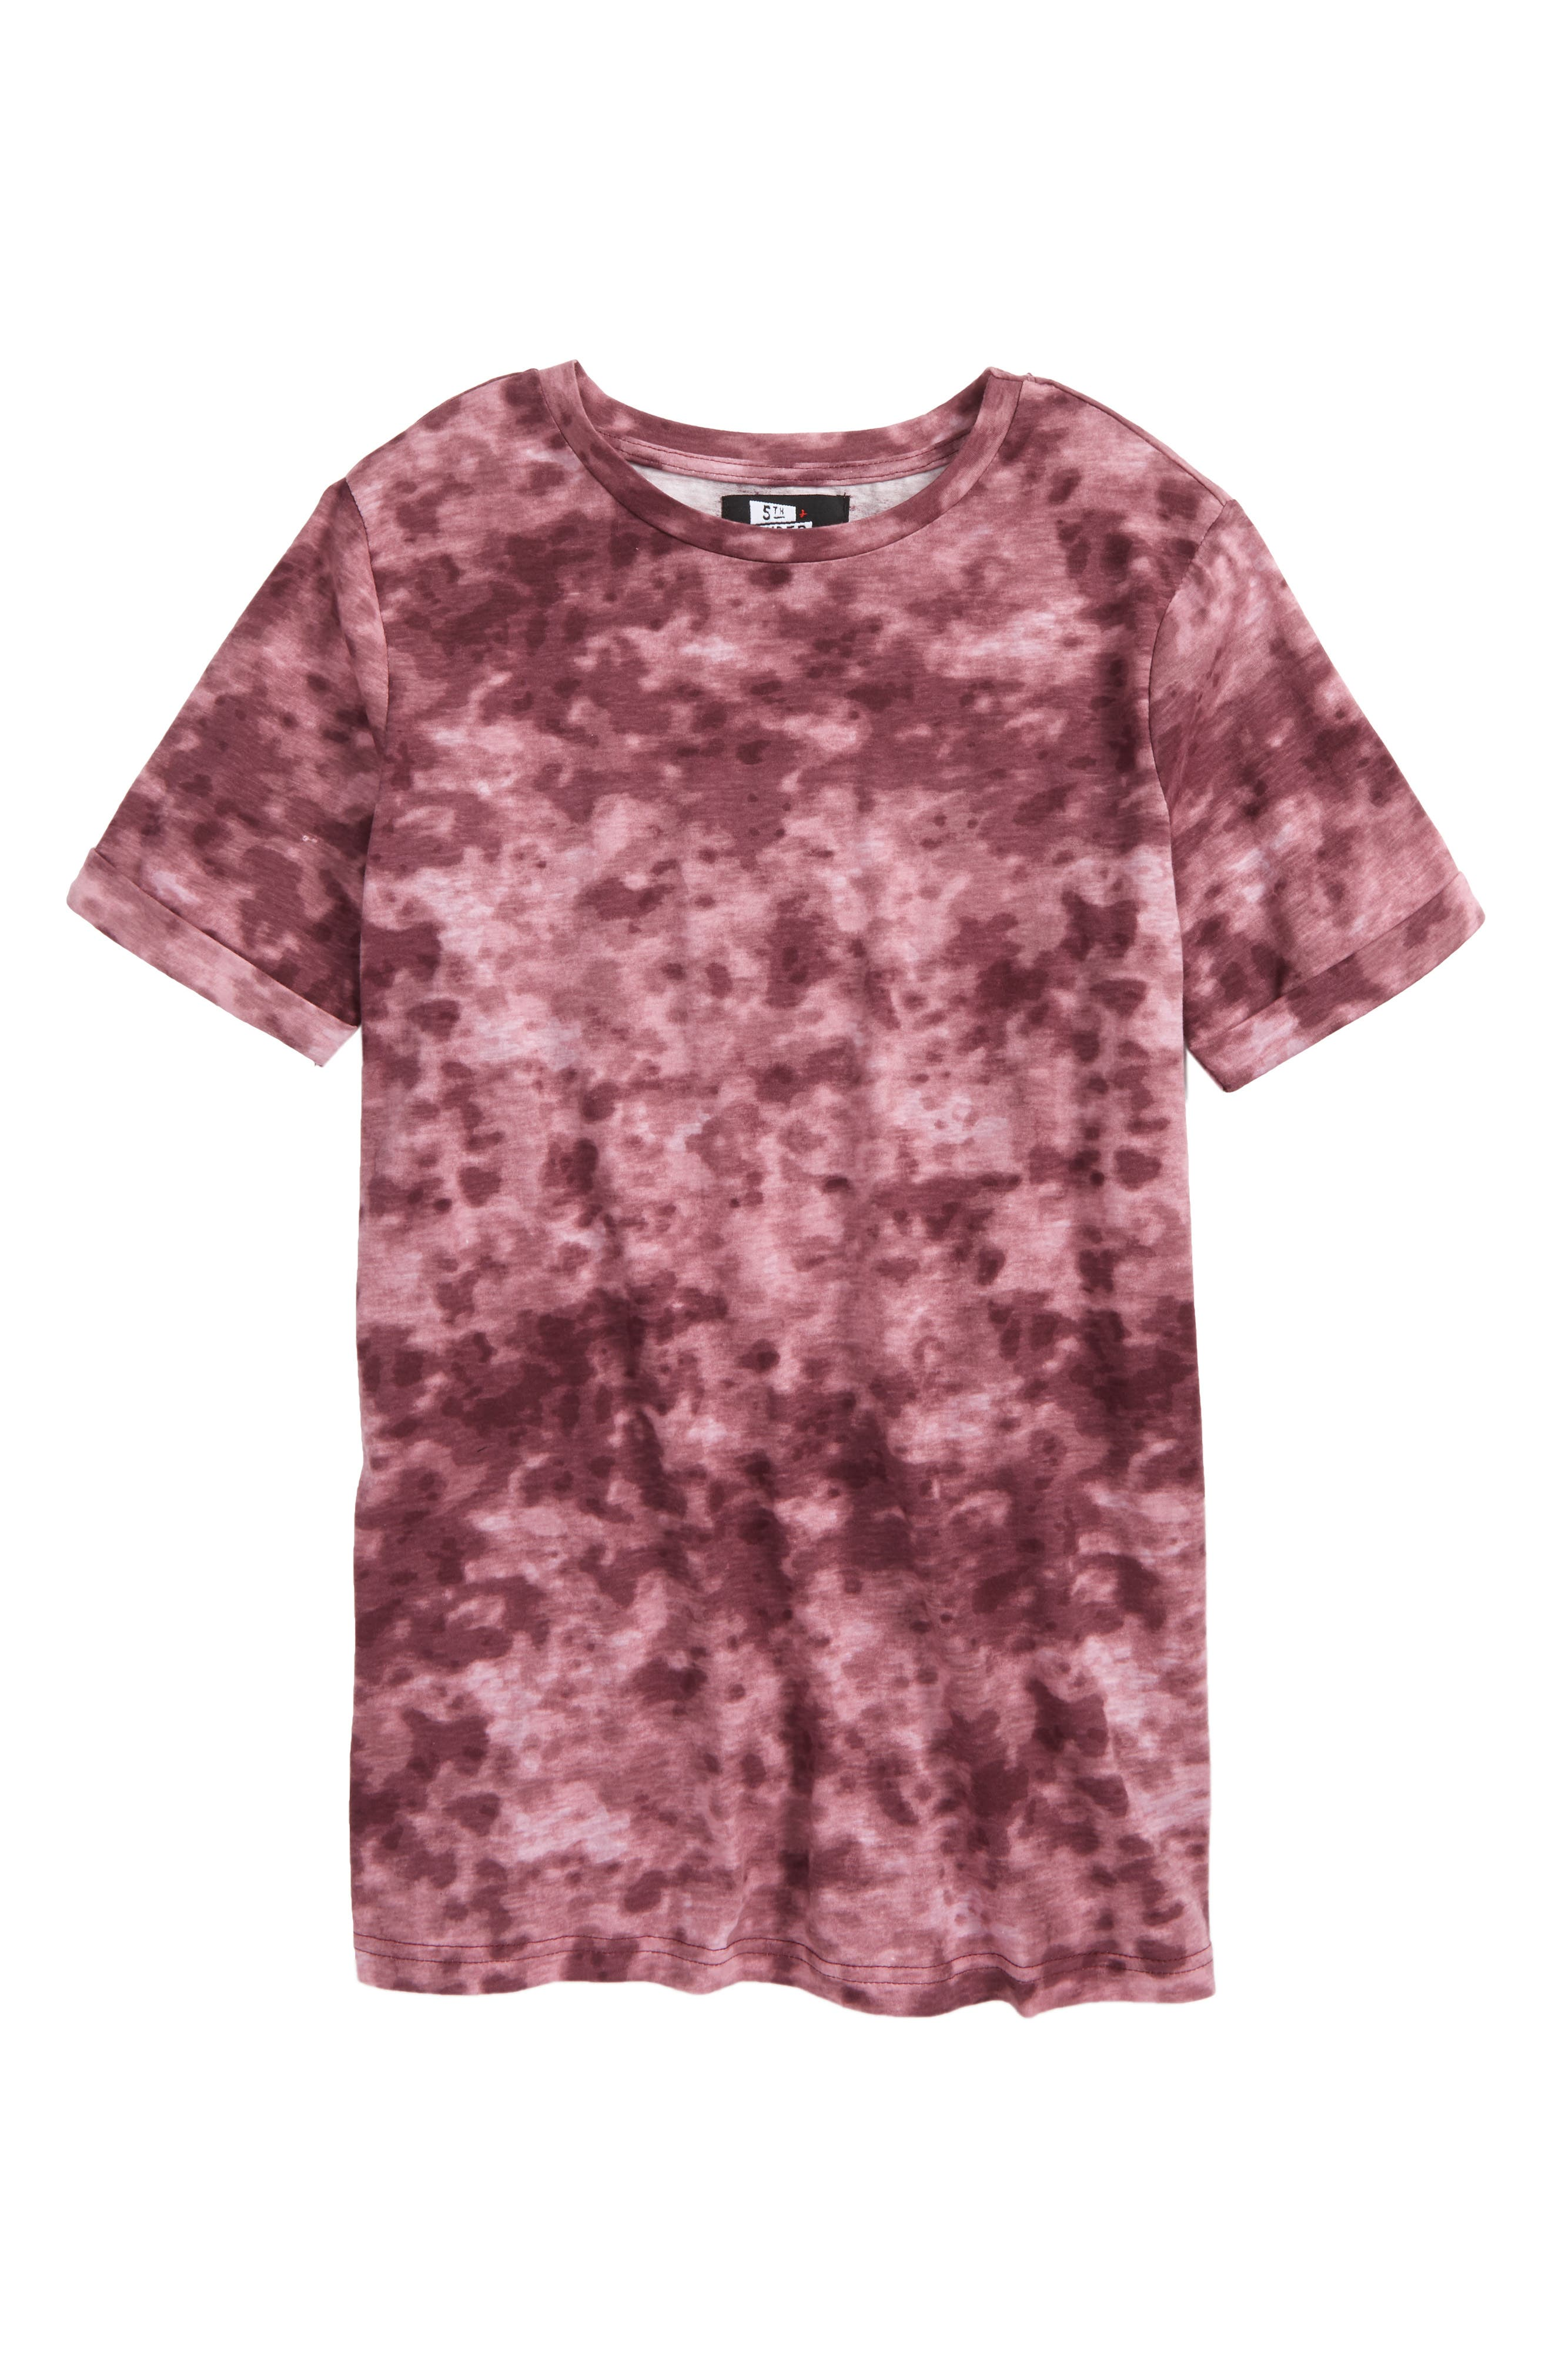 Rolled Cuff T-Shirt,                         Main,                         color, BURGUNDY SNOW WASH PRINT